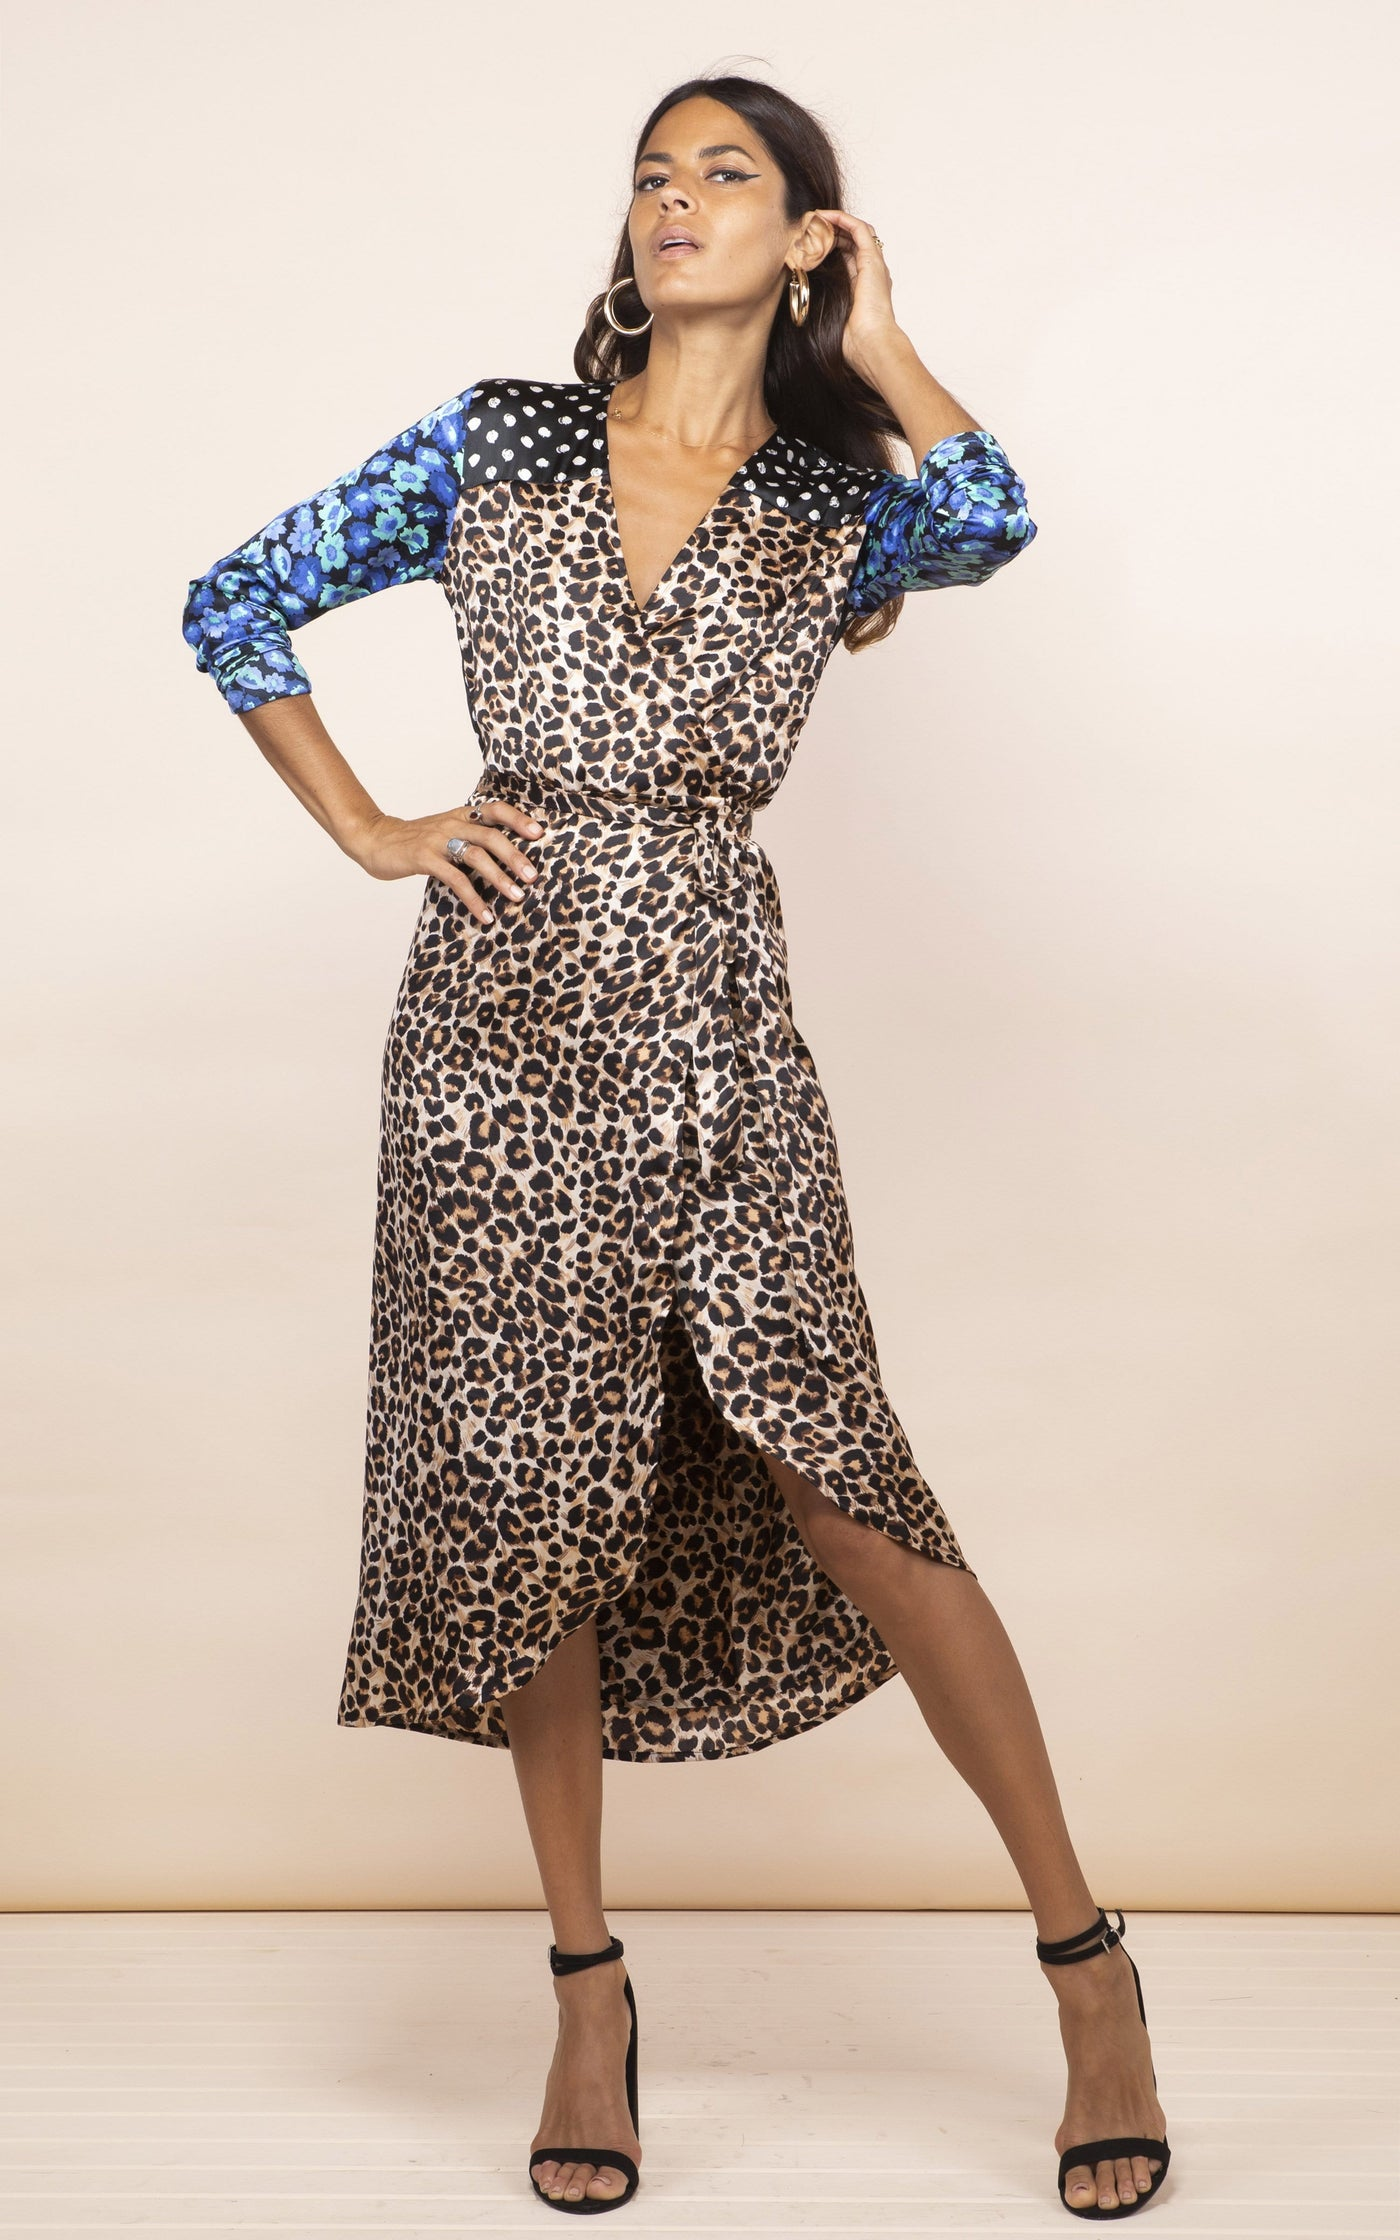 Dancing Leopard model faces forward and leans back wearing Yondal Dress in leopard-floral print